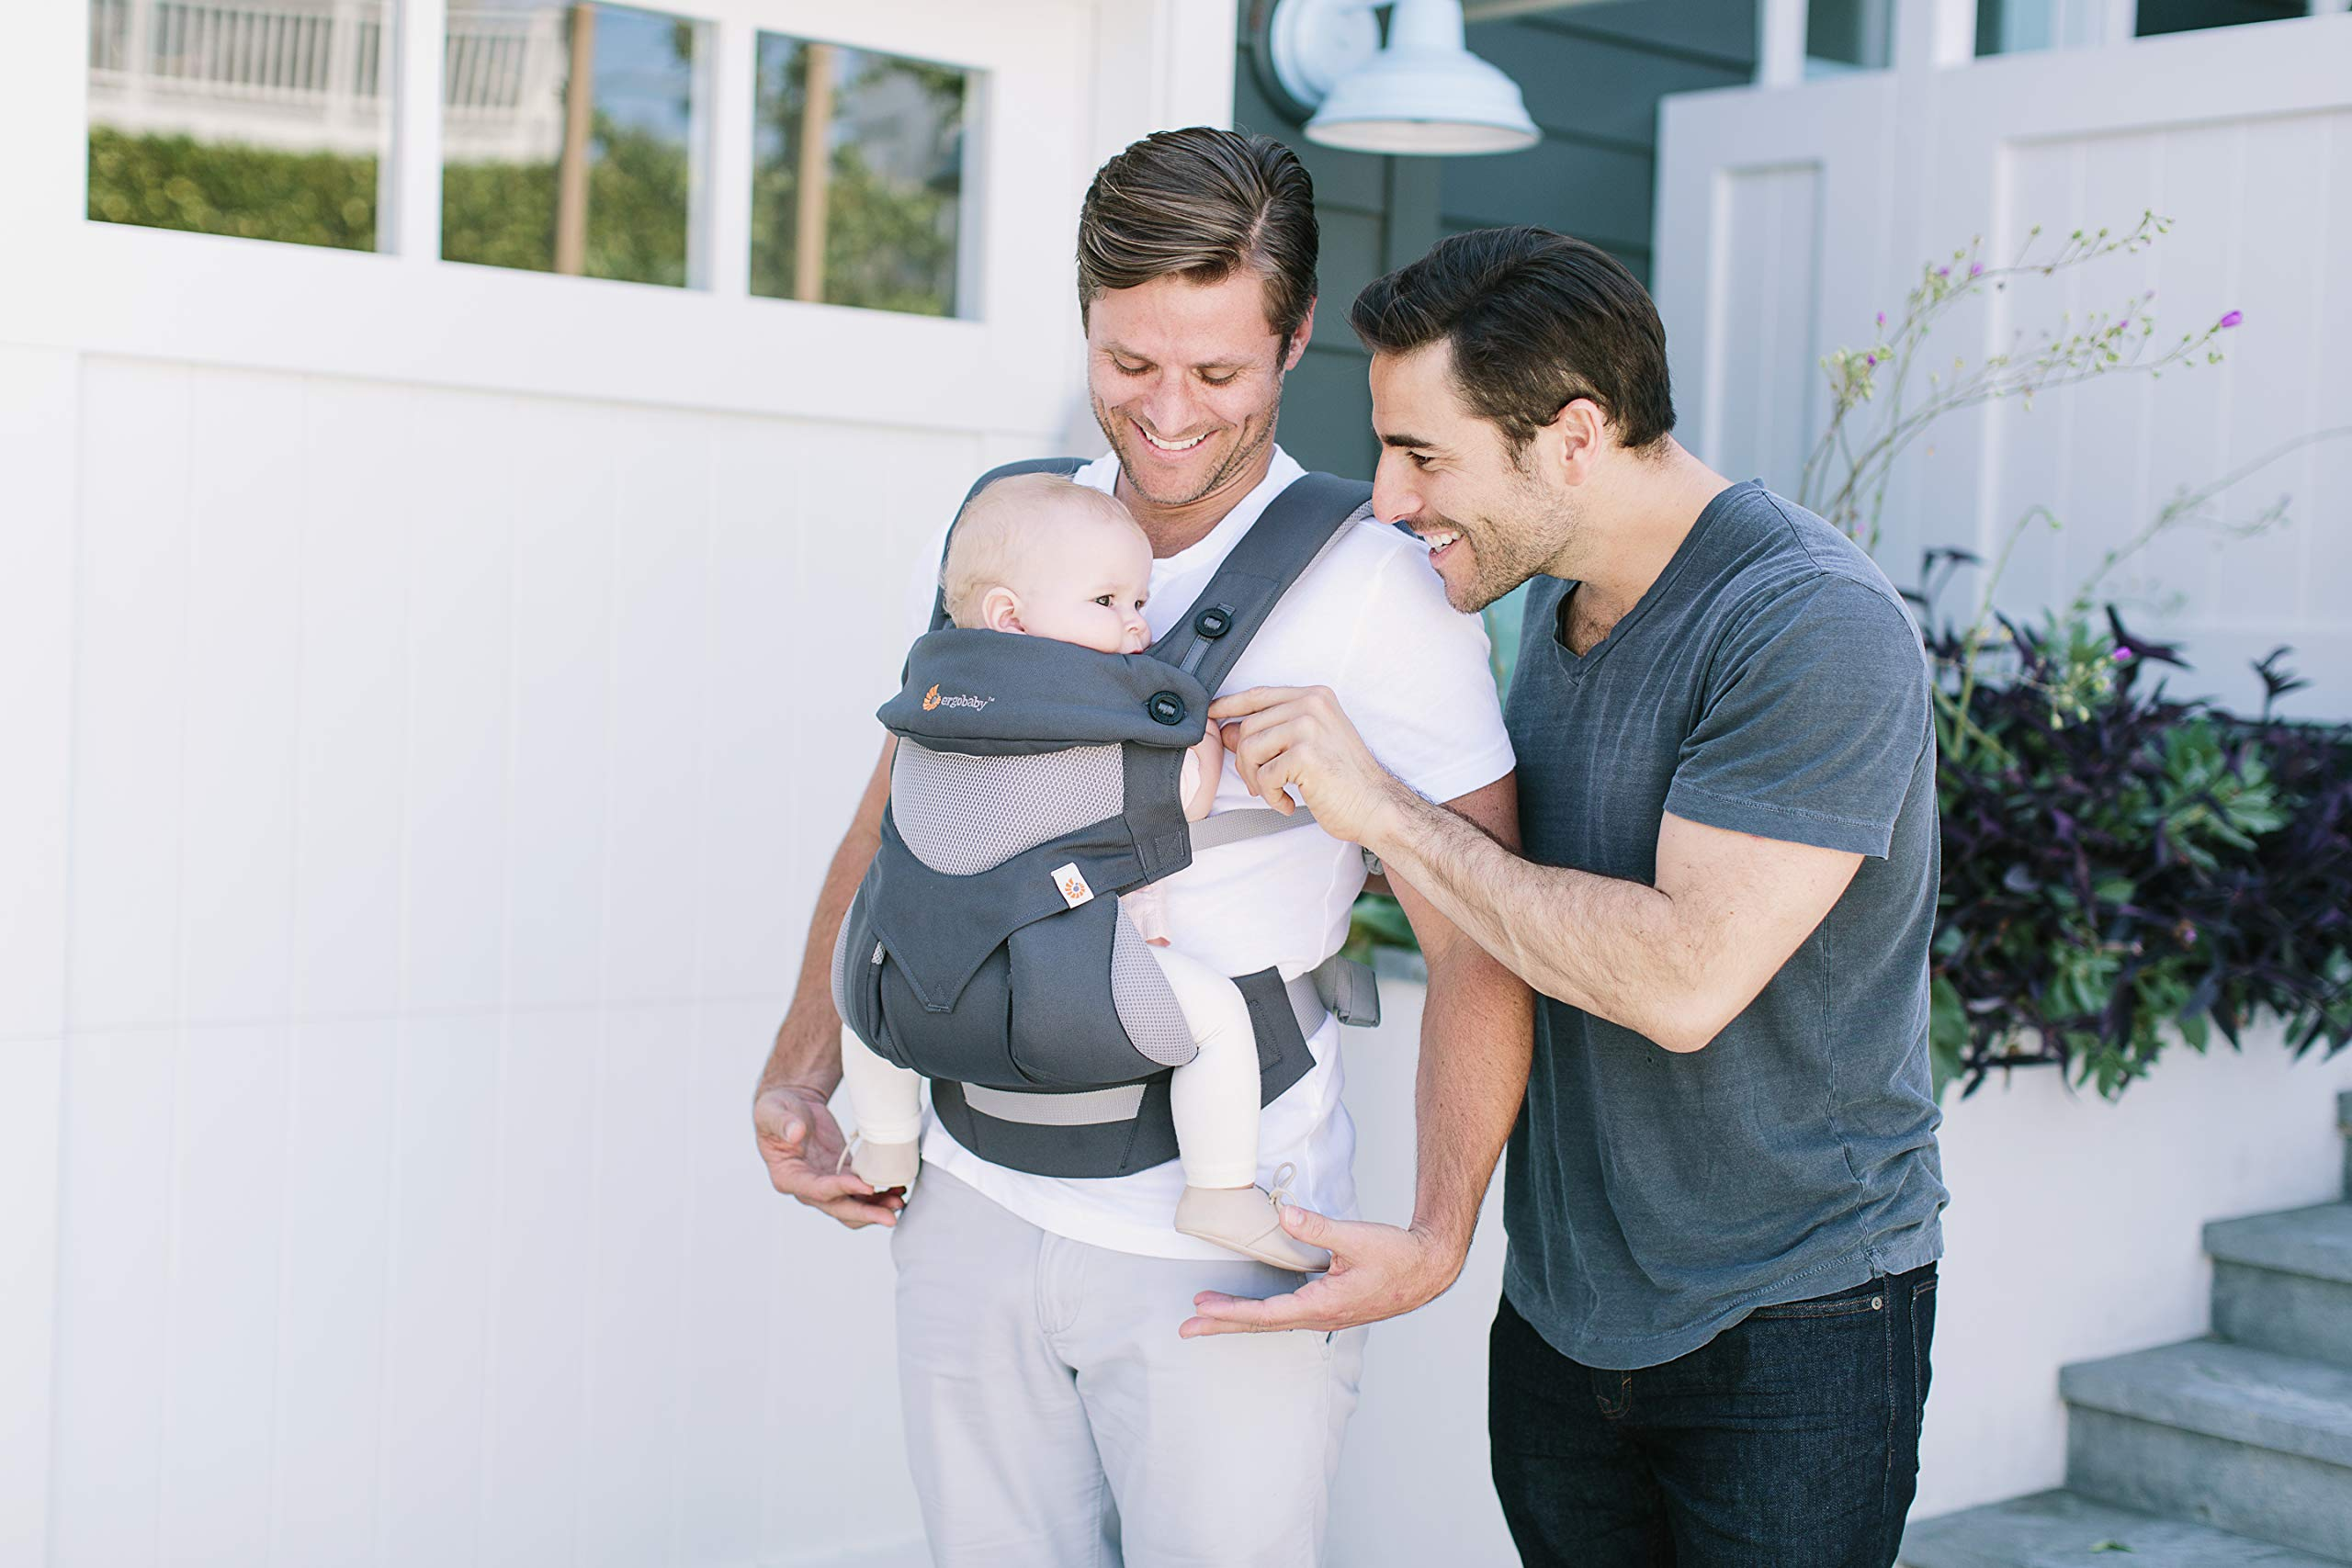 Ergobaby Baby Carrier for Toddler, 360 Cool Air Carbon Grey, 4-Position Ergonomic Child Carrier and Backpack Ergobaby Ergonomic baby carrier for the summer, with 4 ergonomic carry positions: front-inward, back, hip, and front-outward. The carrier is suitable for babies and toddlers weighing 5.5-15 kg, and can be used as a back carrier. Also with insert for newborn babies weighing 3.2-5.5 kg (7-12 lbs), sold separately. NEW - The waistbelt with lumbar support can be worn a little higher or lower to support the lower back and provide optimal comfort, and has adjustable padded shoulder straps. The carrier is suitable for men and women. Maximum baby comfort - Breathable 3D air mesh material provides an optimal temperature for your baby on warm days. The structured bucket seat supports the correct frog-leg position for the baby. The carrier also has a neck support and privacy hood with 50+ UV sun protection. 8